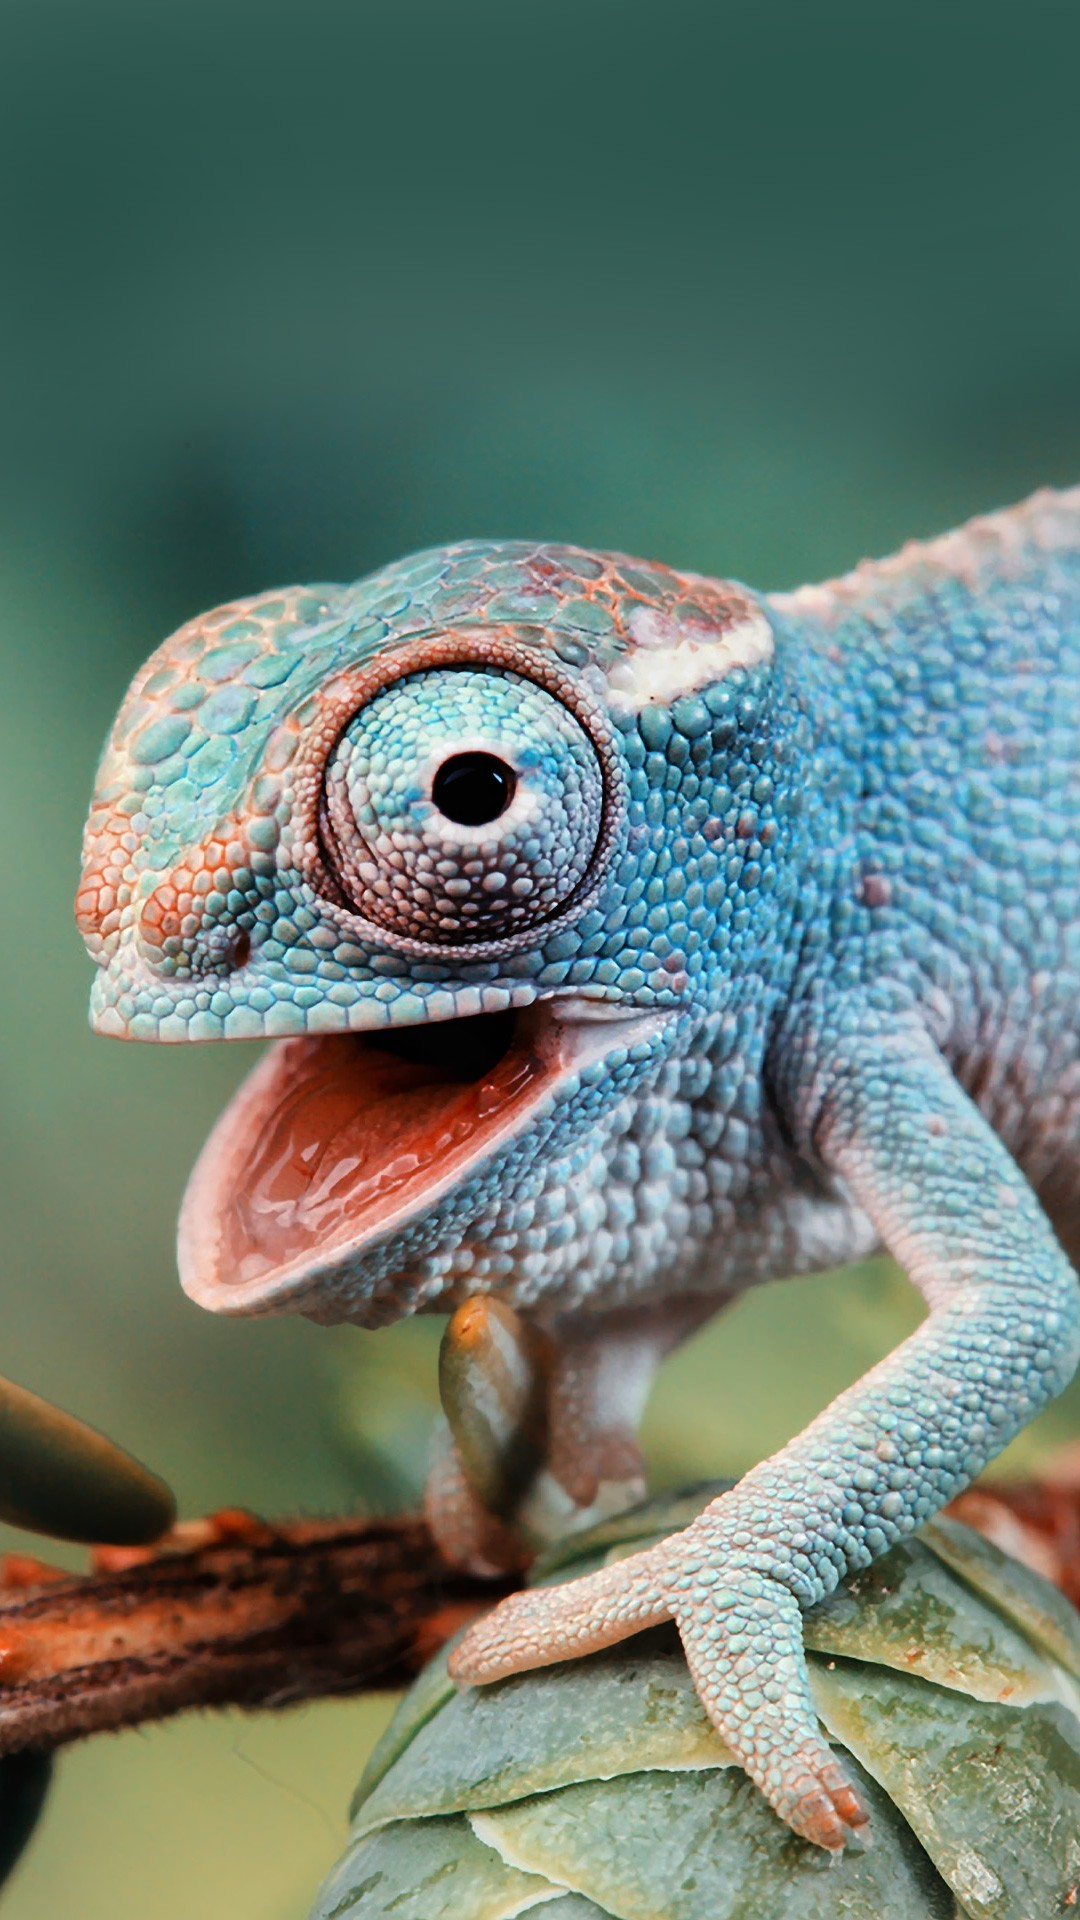 Cute Wallpapers For Phones For Free Cute Chameleon Best Htc One Wallpapers Free And Easy To